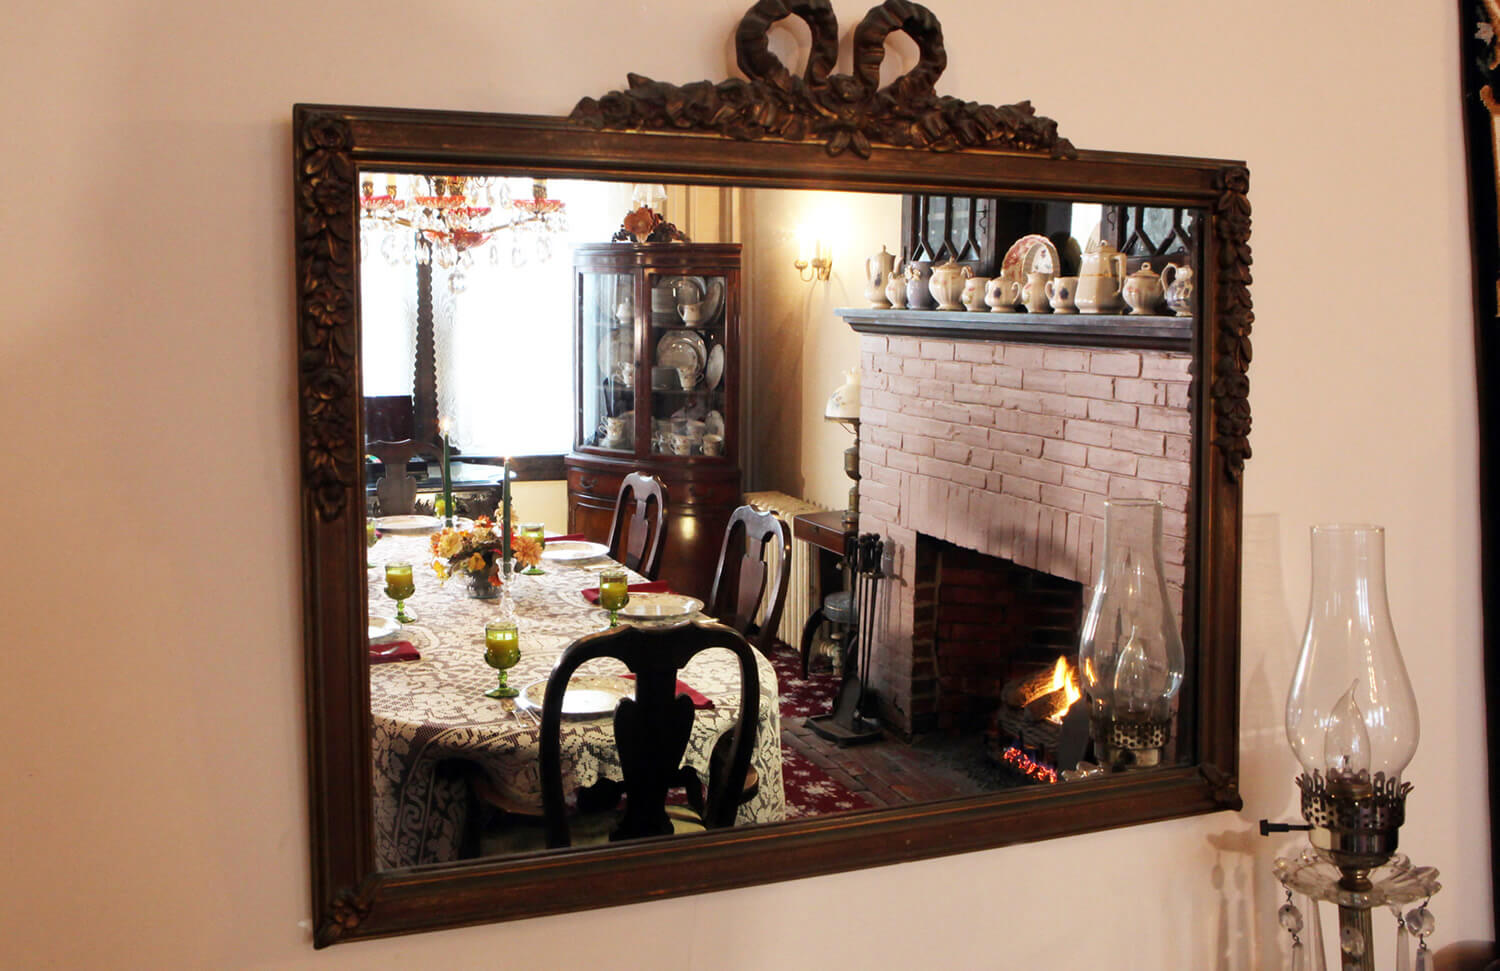 brown rectangular antique mirror reflects the Dining Room table and mauve fireplace